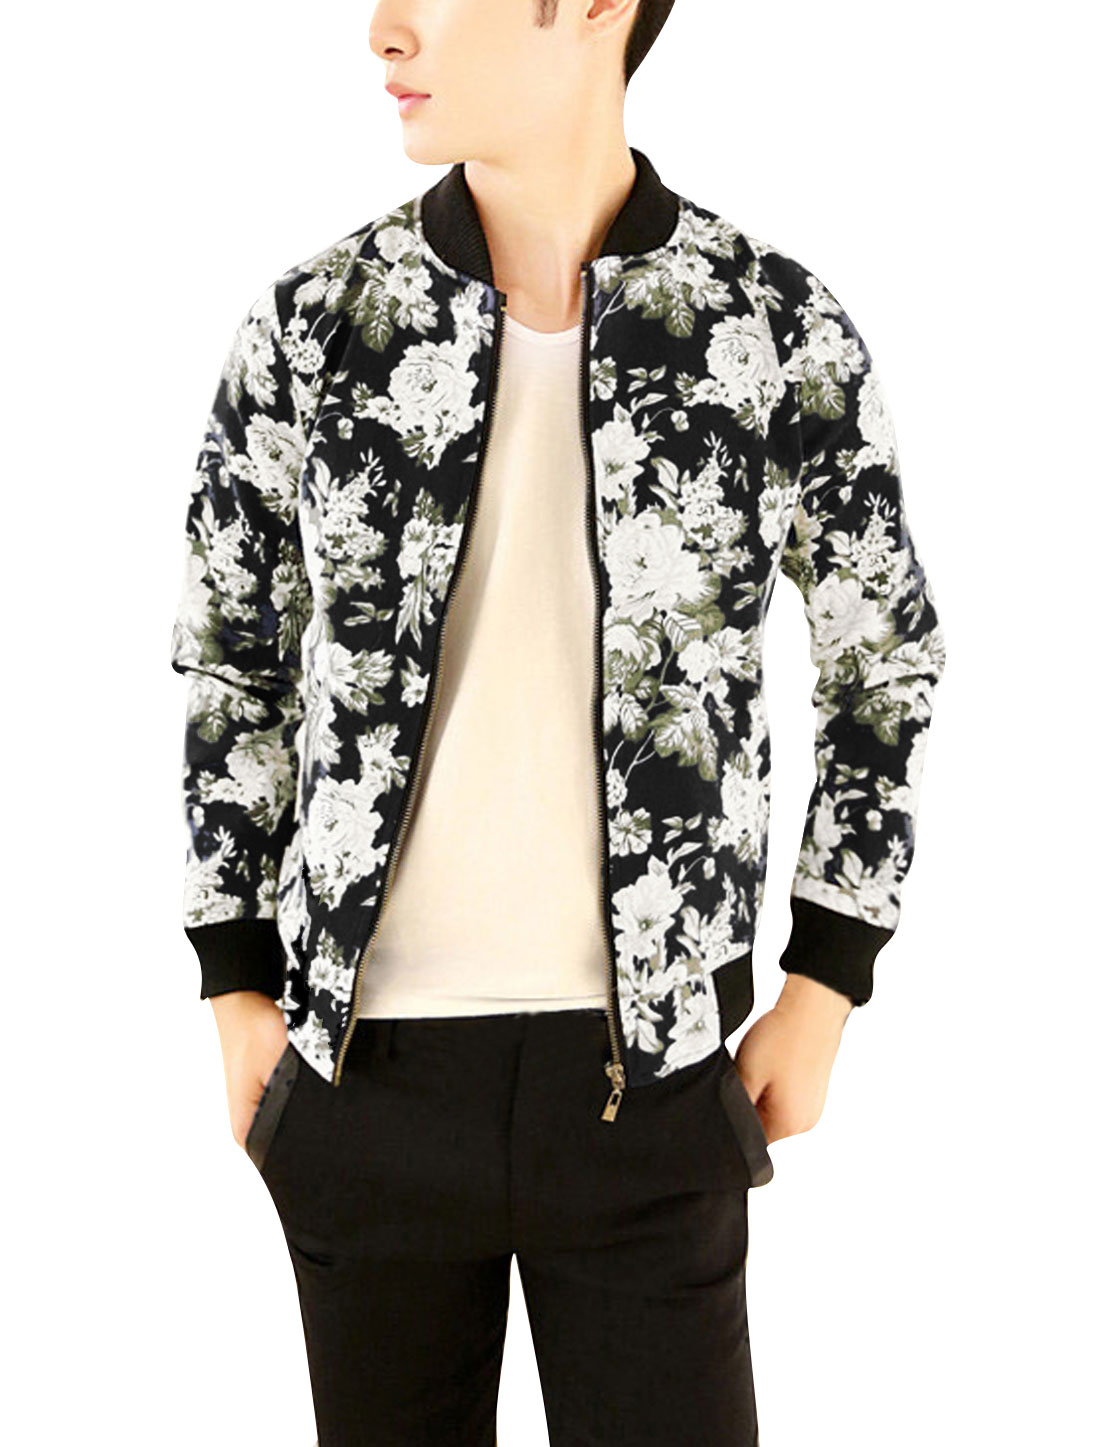 Men's Fashionable Flower Pattern Black Long Sleeve Jacket S